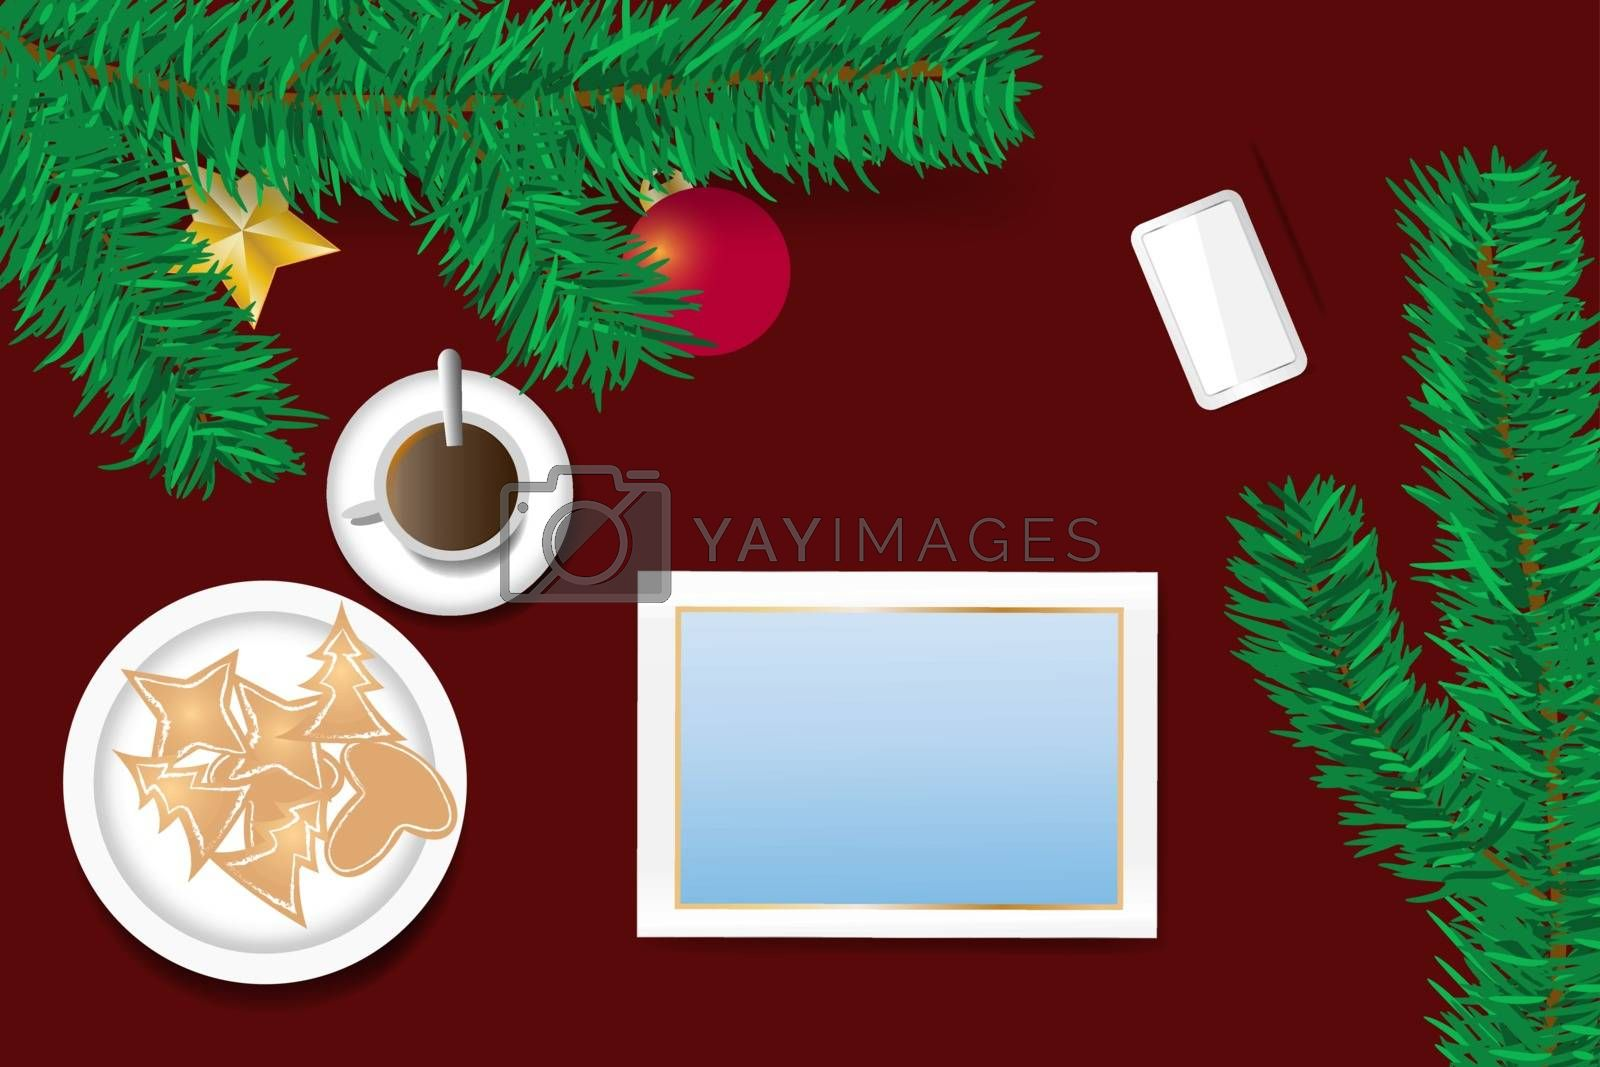 Ornate Christmas with blank screen of tablet concept by Frank11